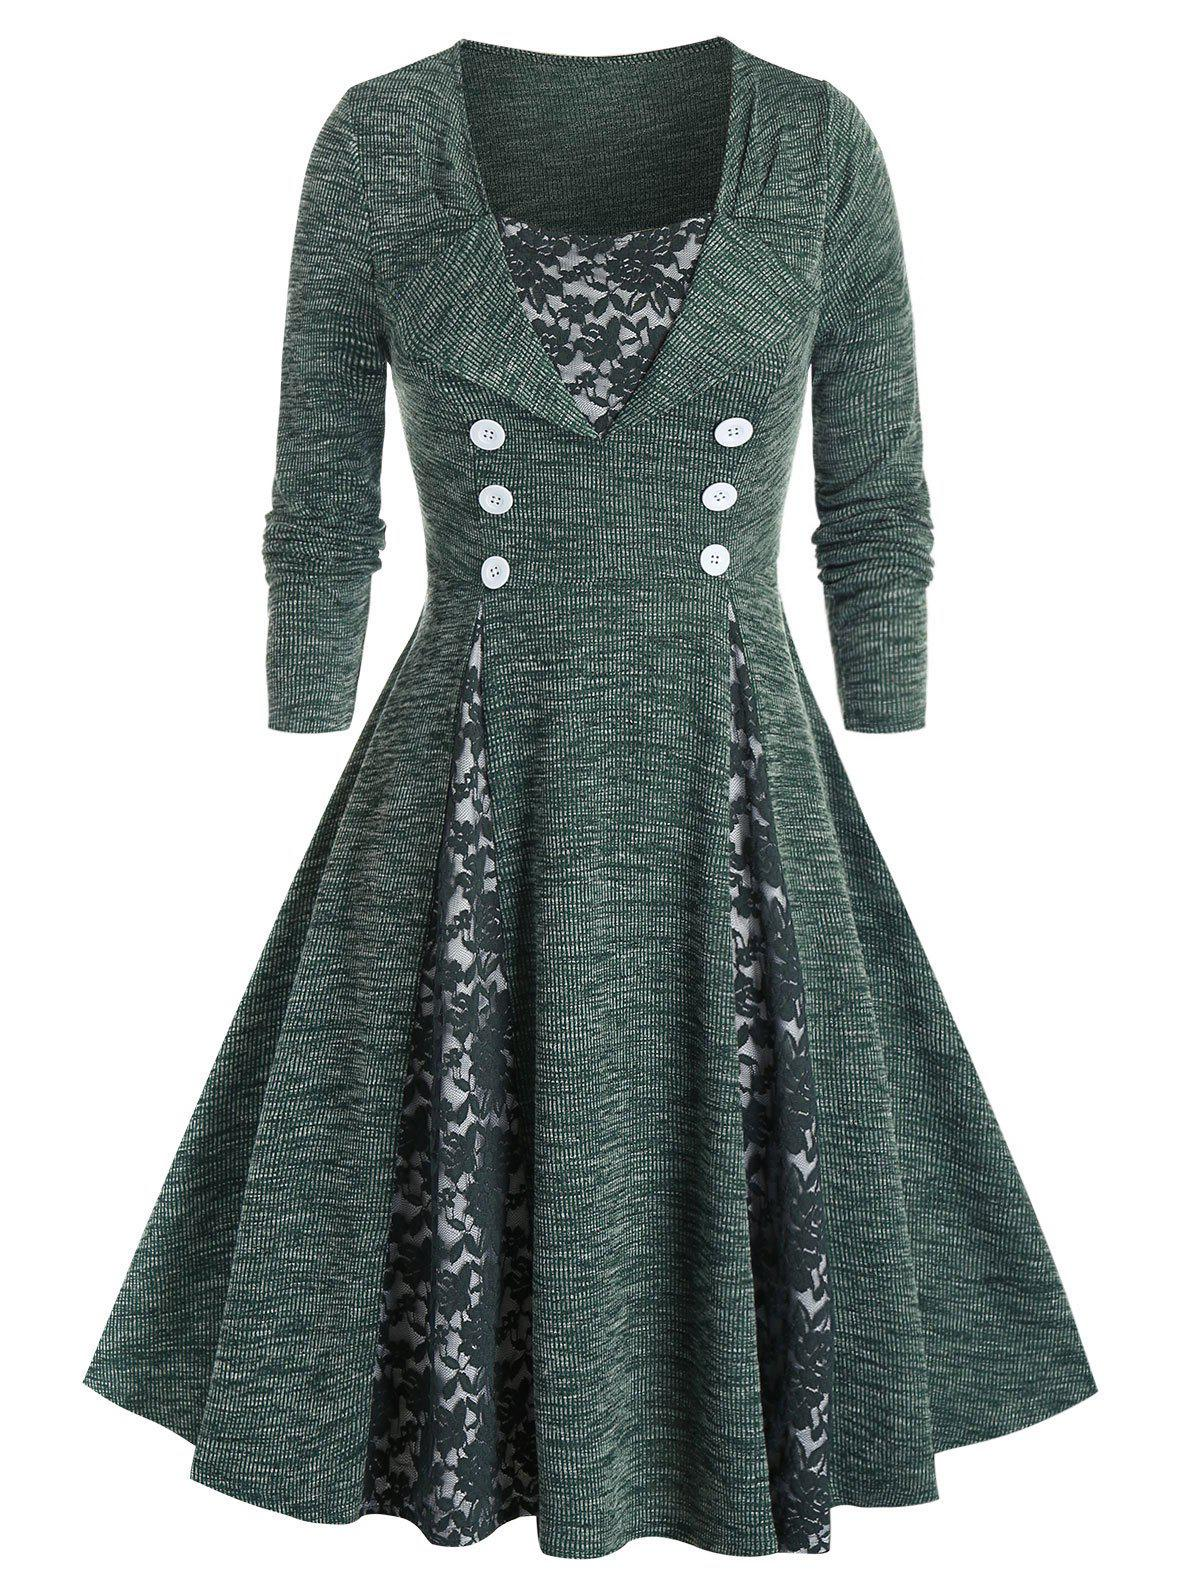 Plus Size Lace Insert Sailor Button Knitted Dress - DEEP GREEN 5X